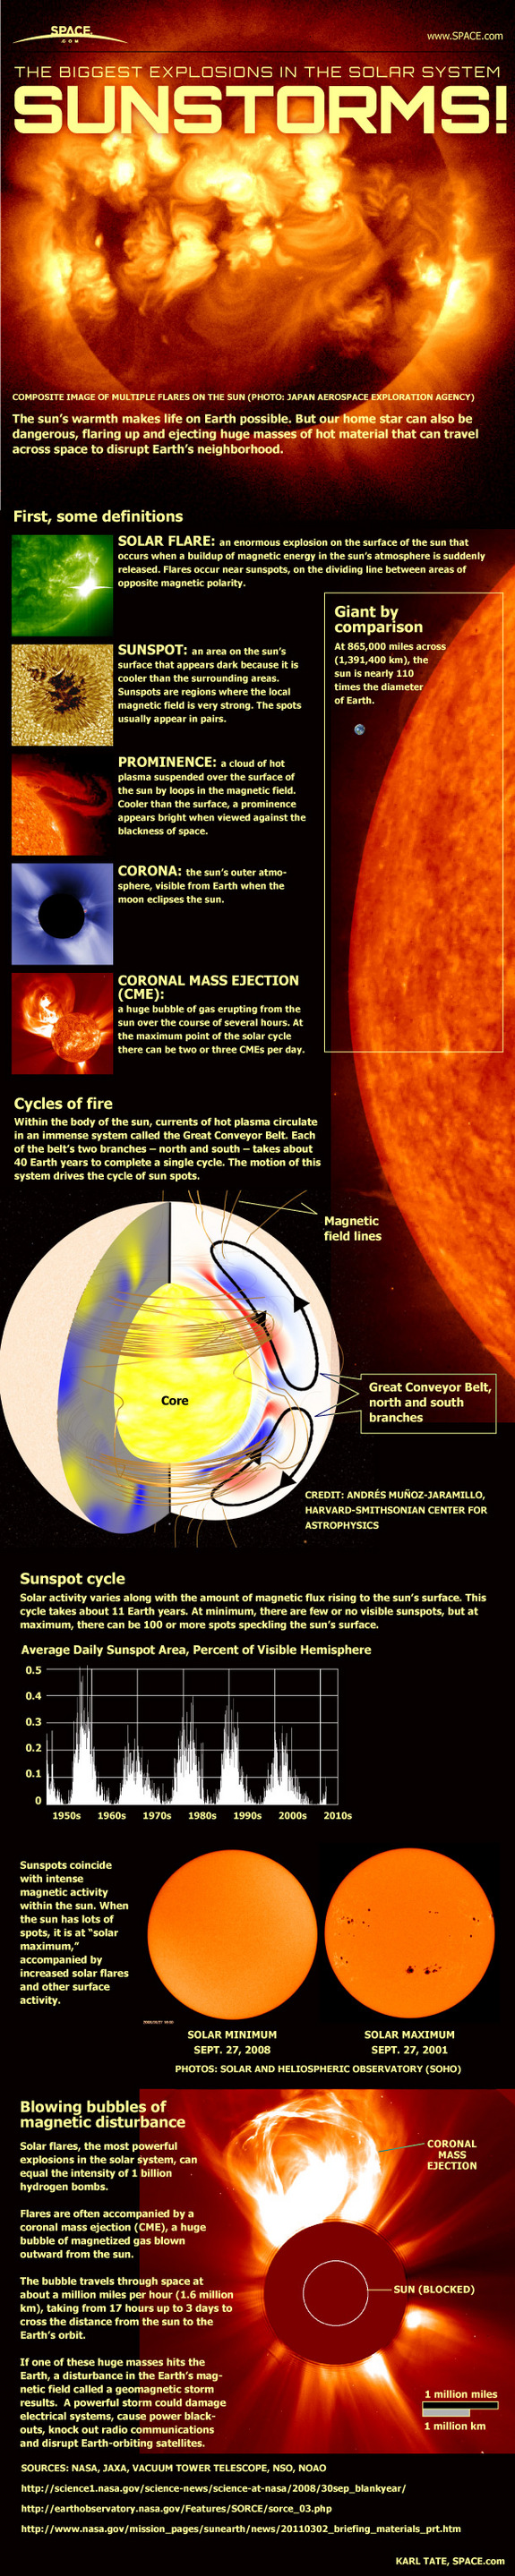 Infographic: The Biggest Explosions in the Solar System Sunstorms